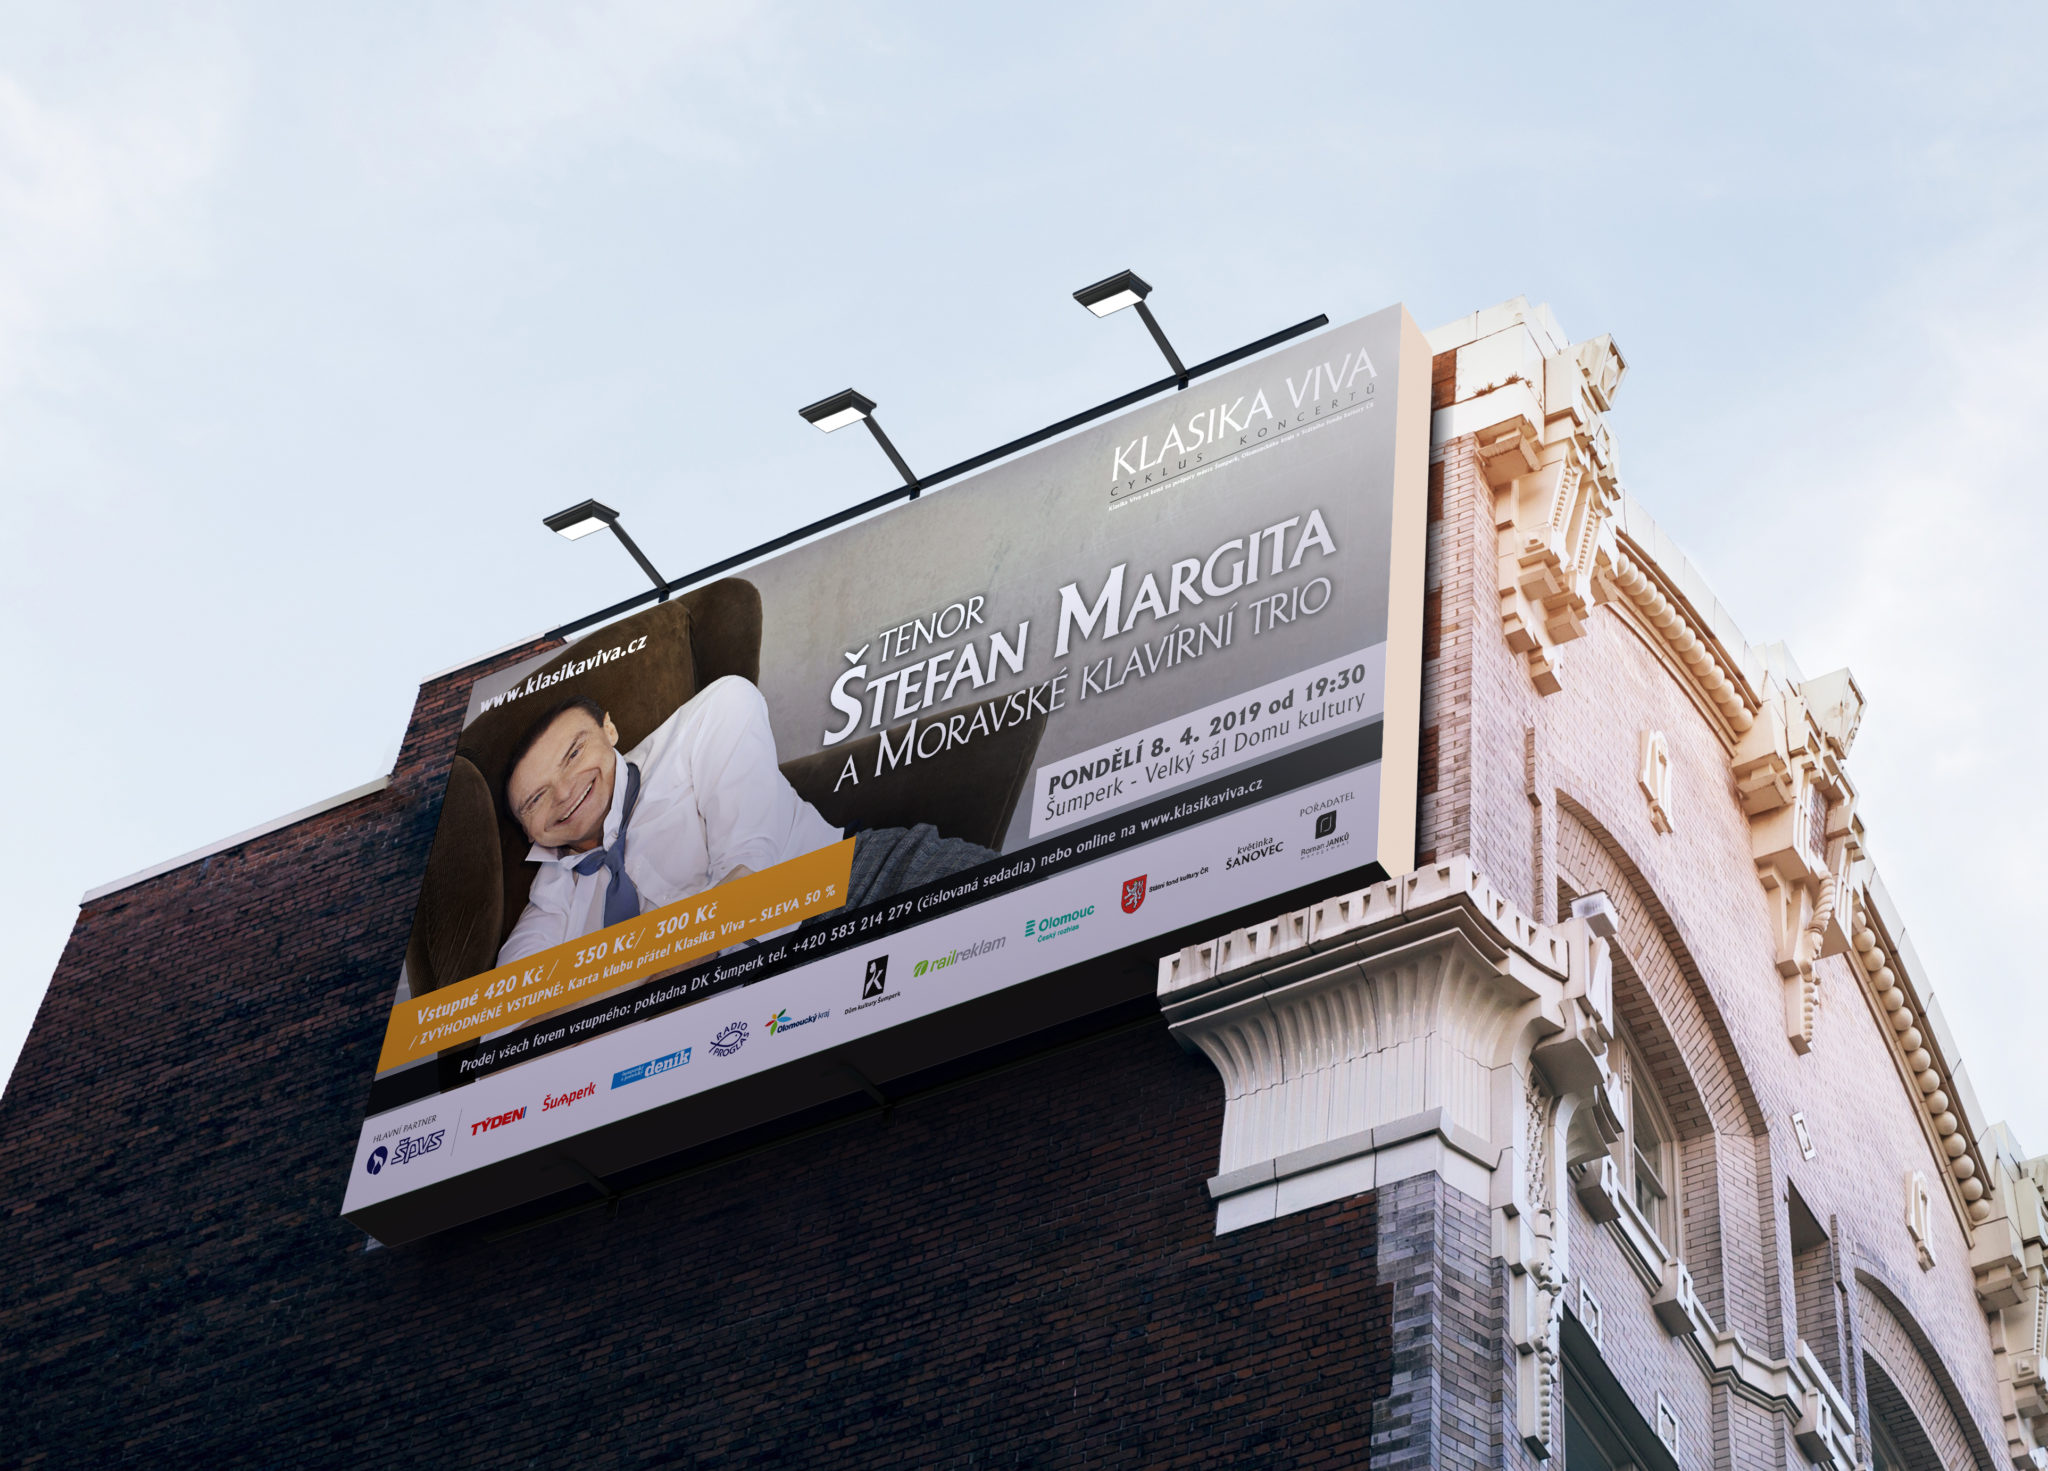 margita-billboard.jpg